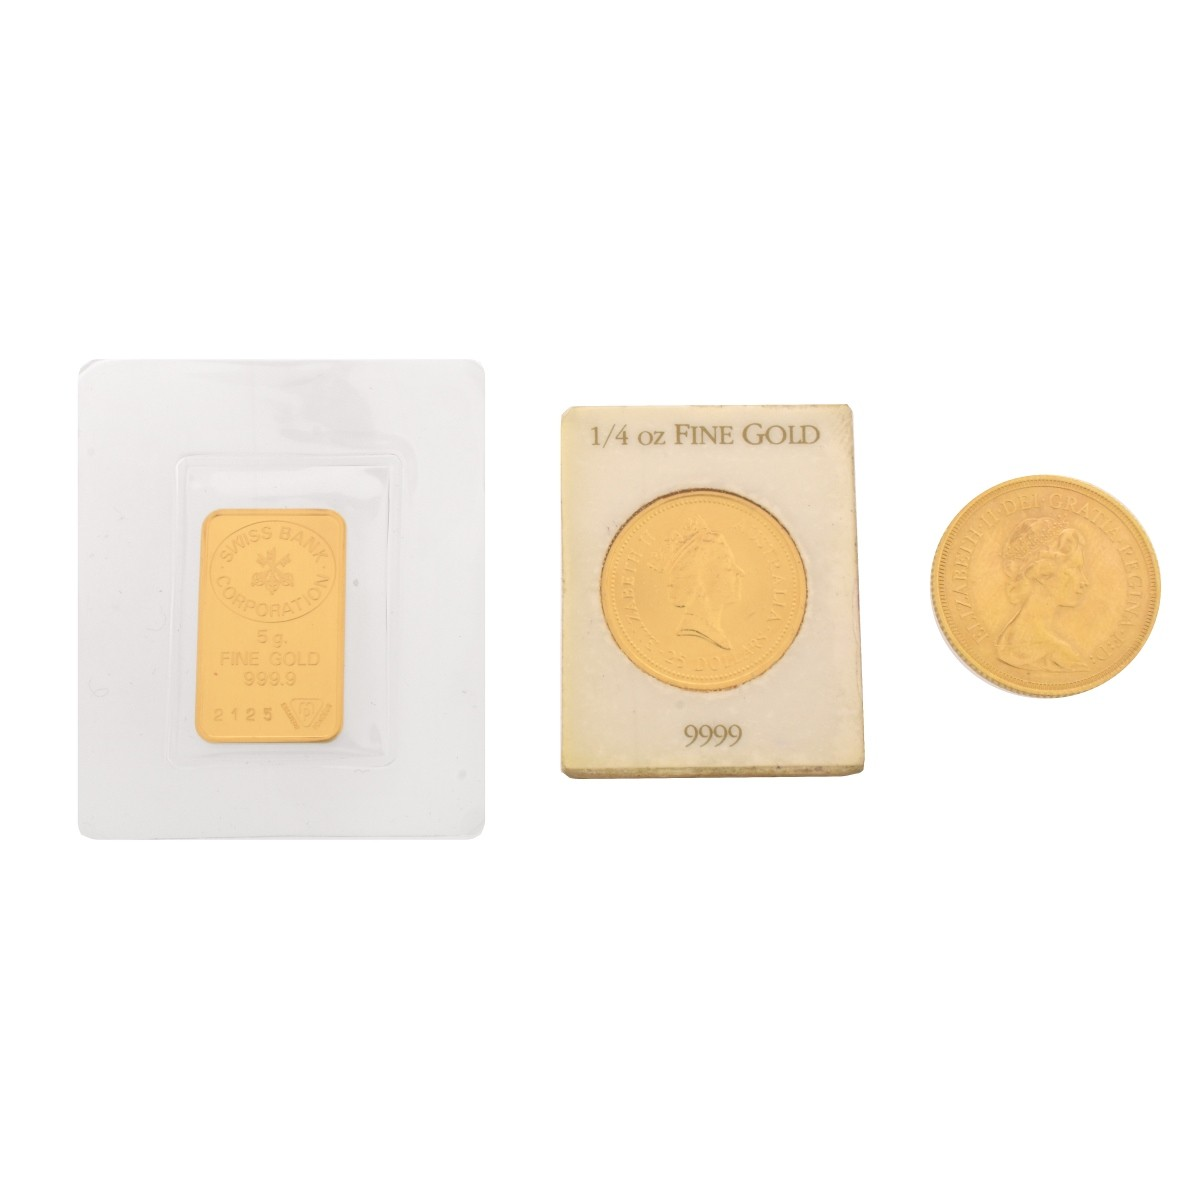 Two Gold Coins, One Ingot